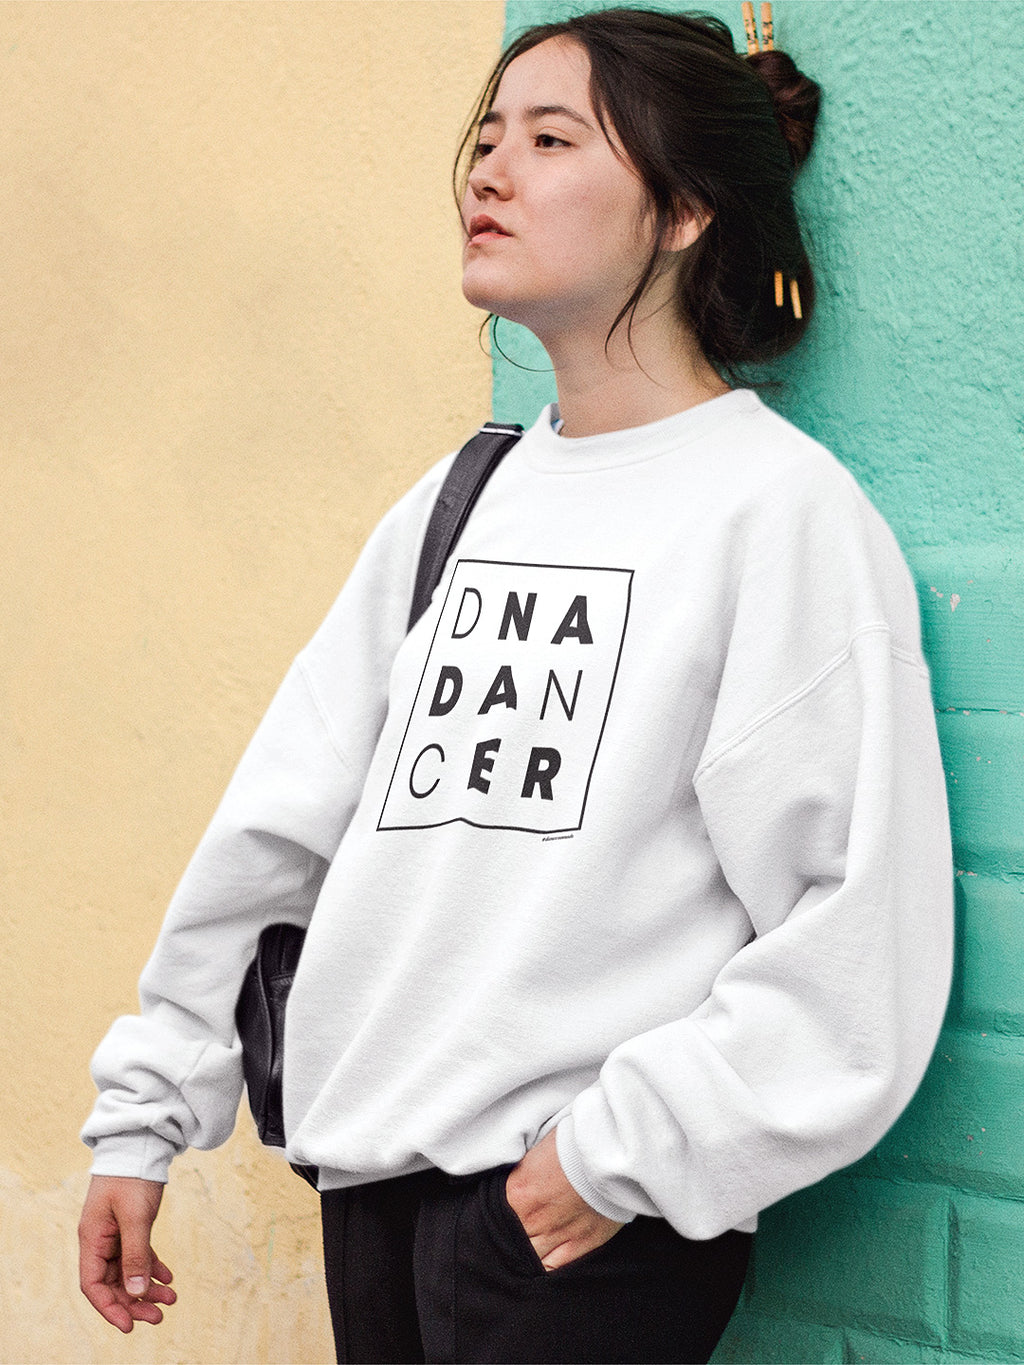 DNA Dancer Unisex Sweater